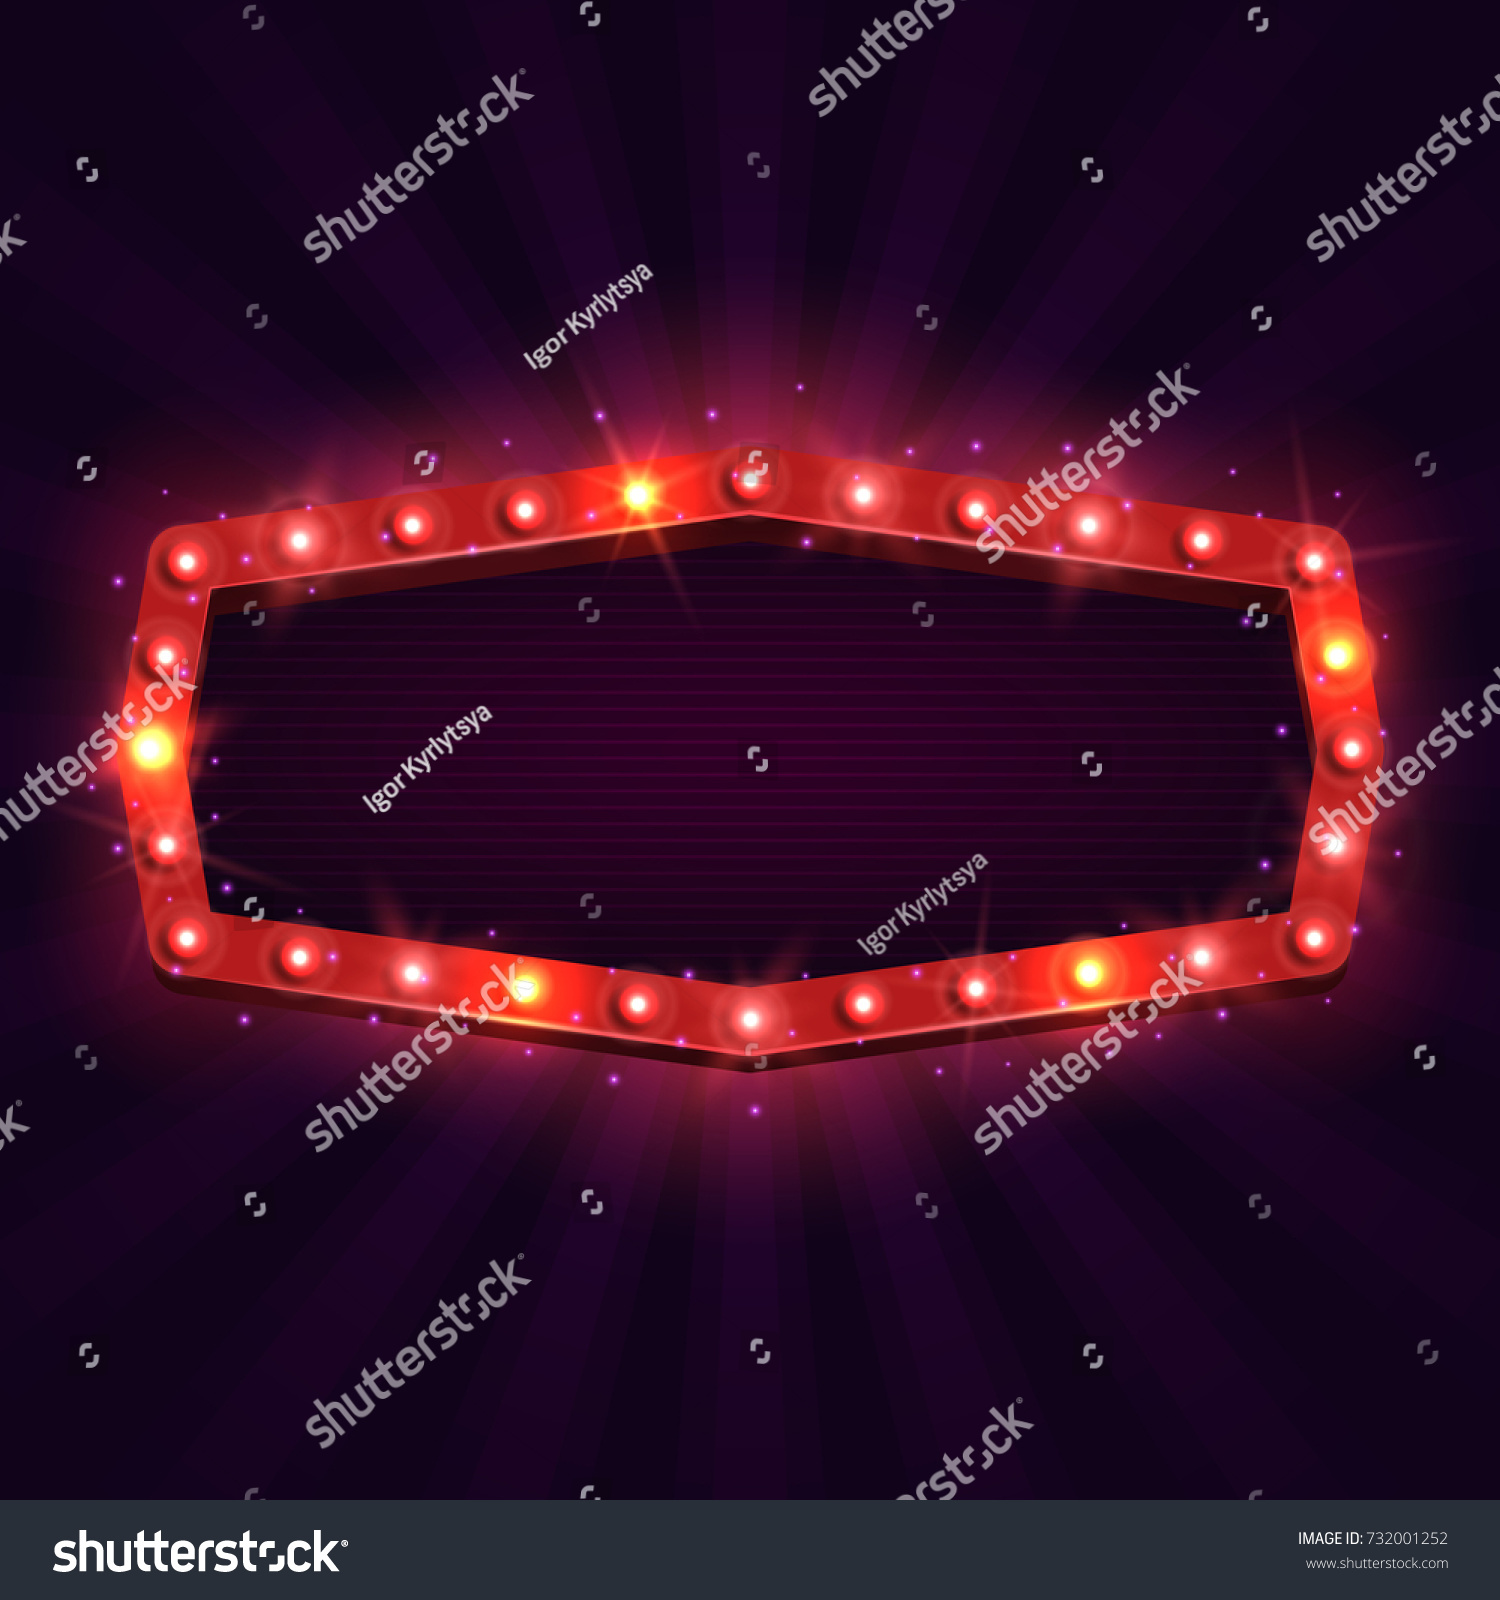 Shining retro billboard. Vintage bright sign board for your design. Vector illustration. #732001252